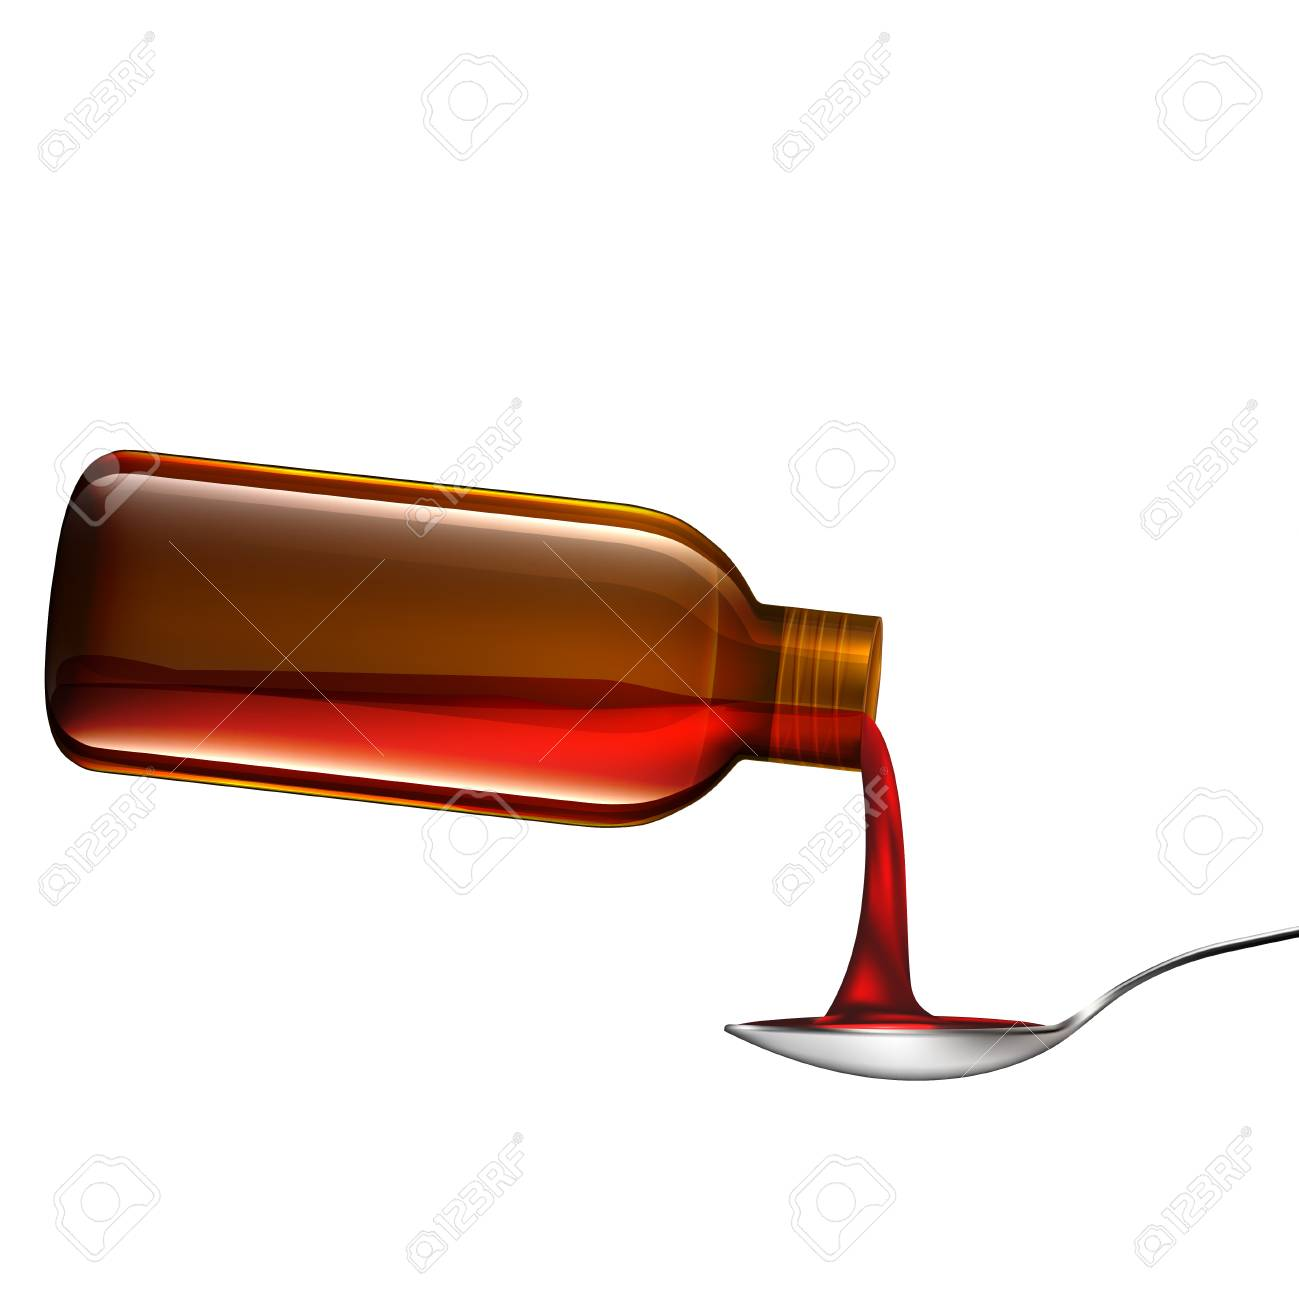 Bottle pouring medicine syrup in spoon.